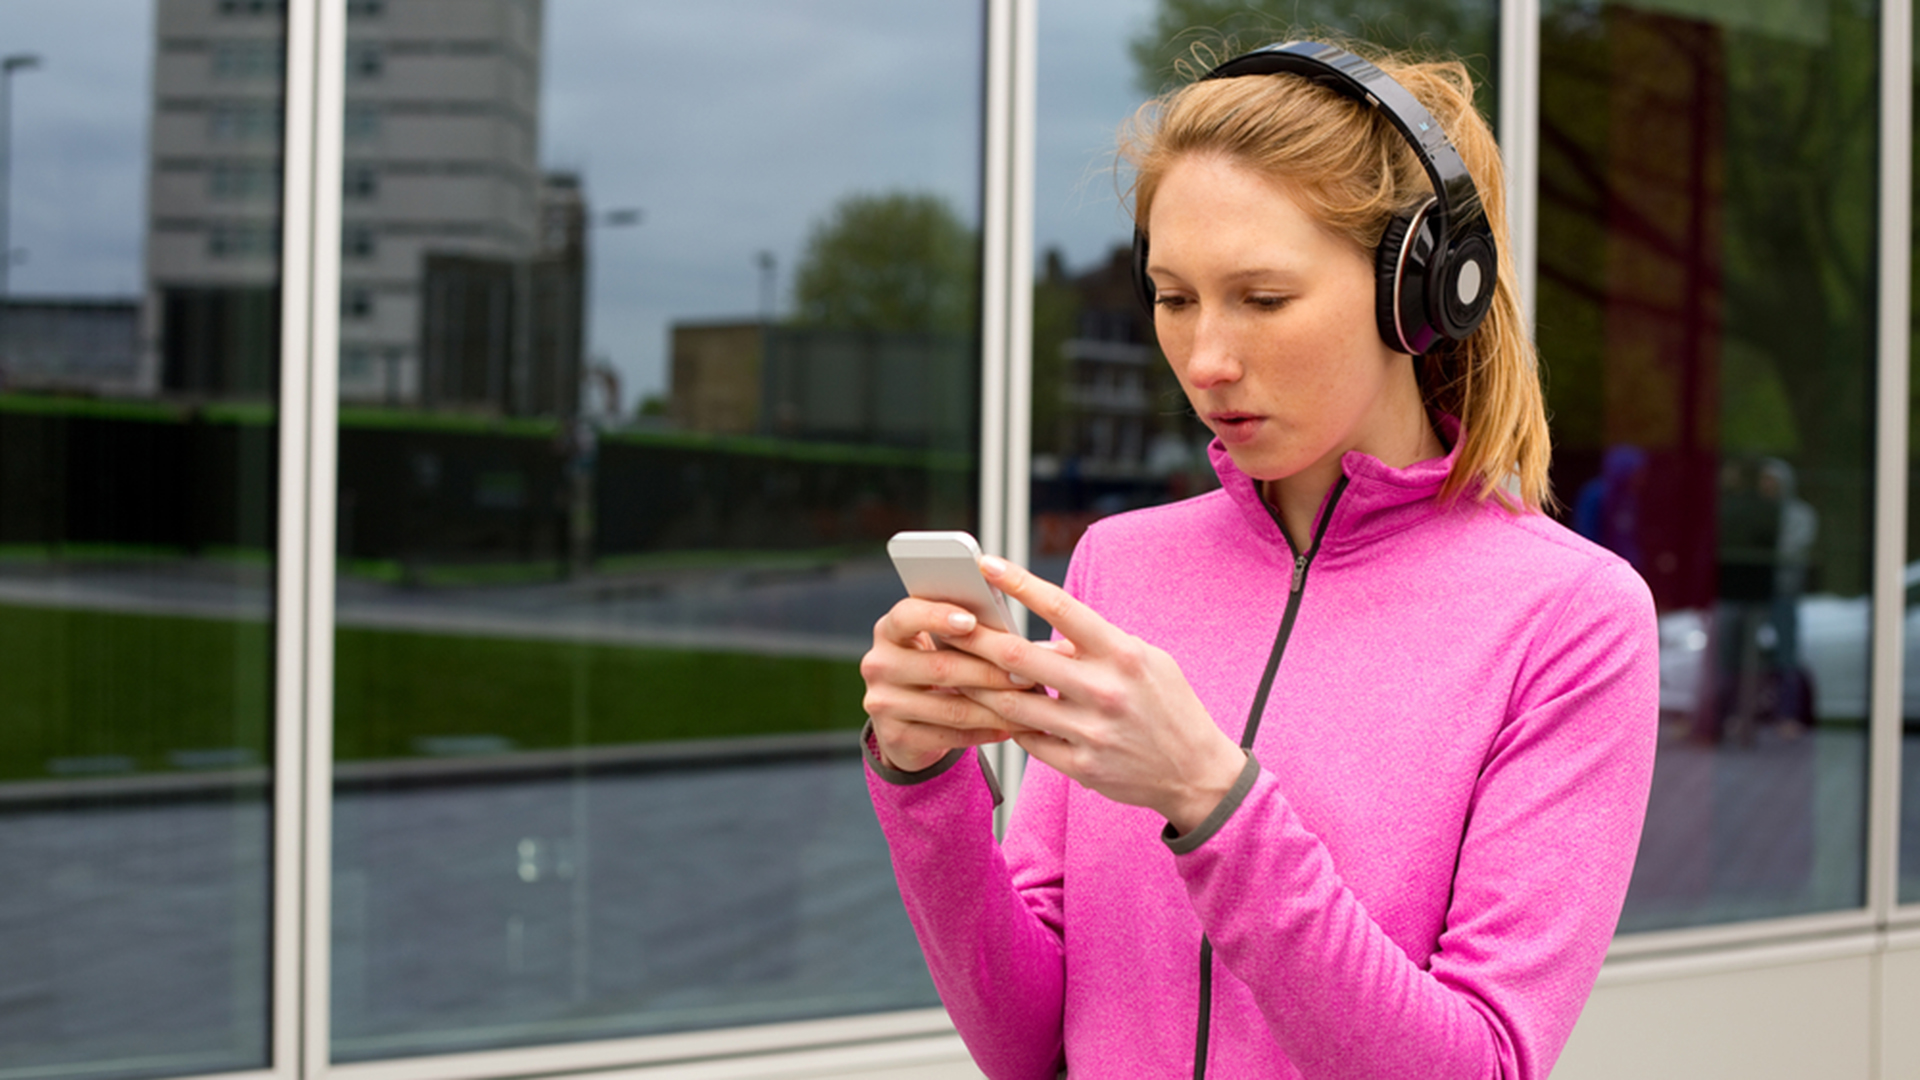 How To Prevent Smartphone Use From Causing Hand Pain